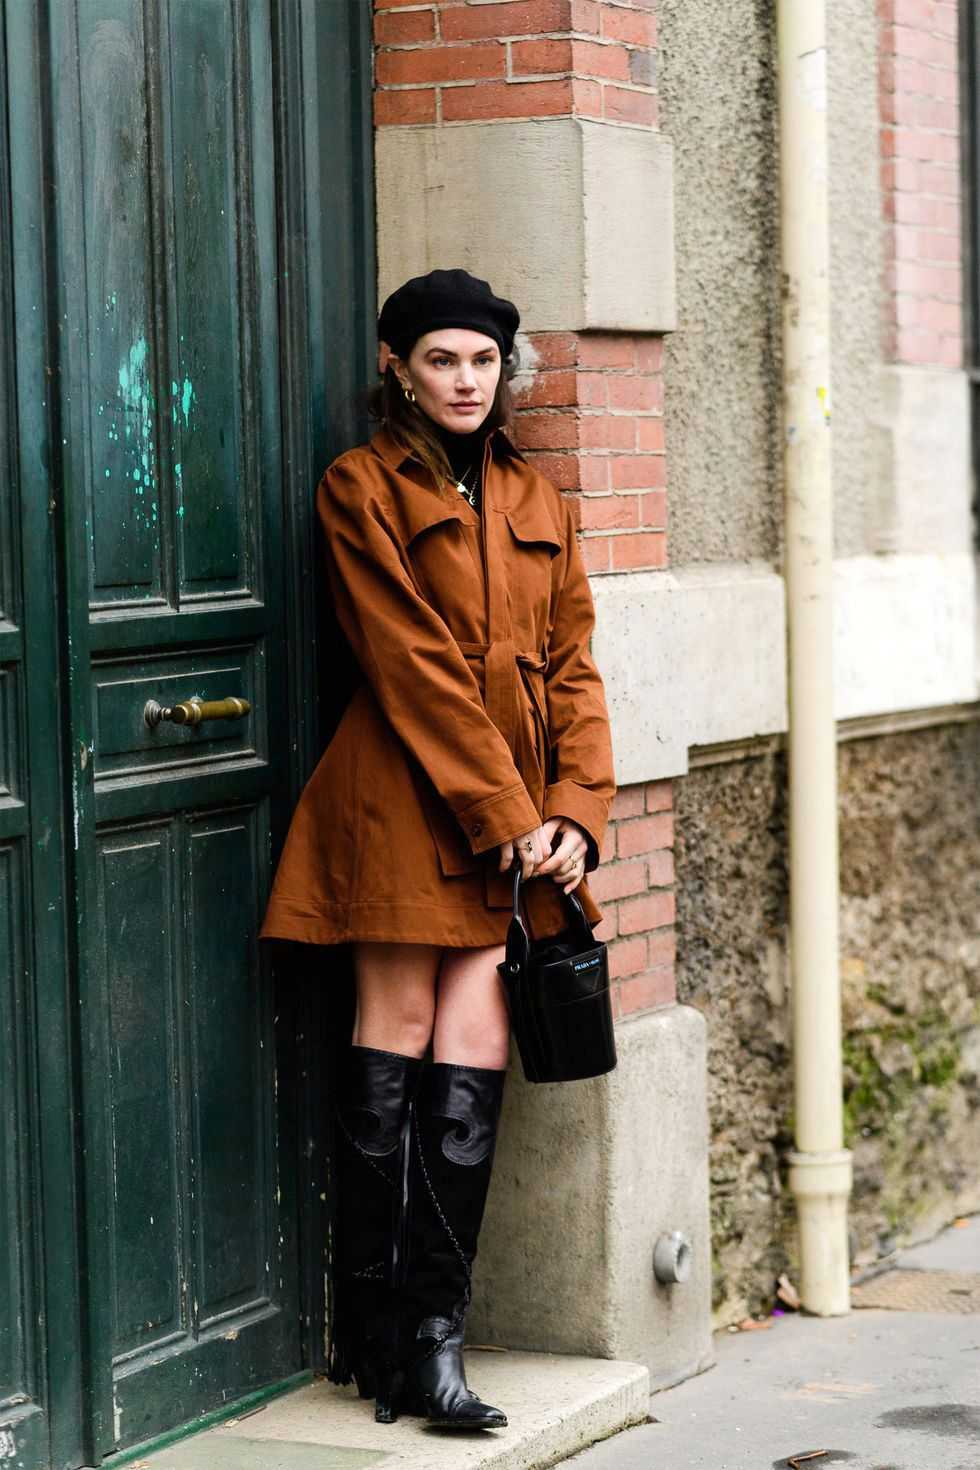 belted jacket + boots